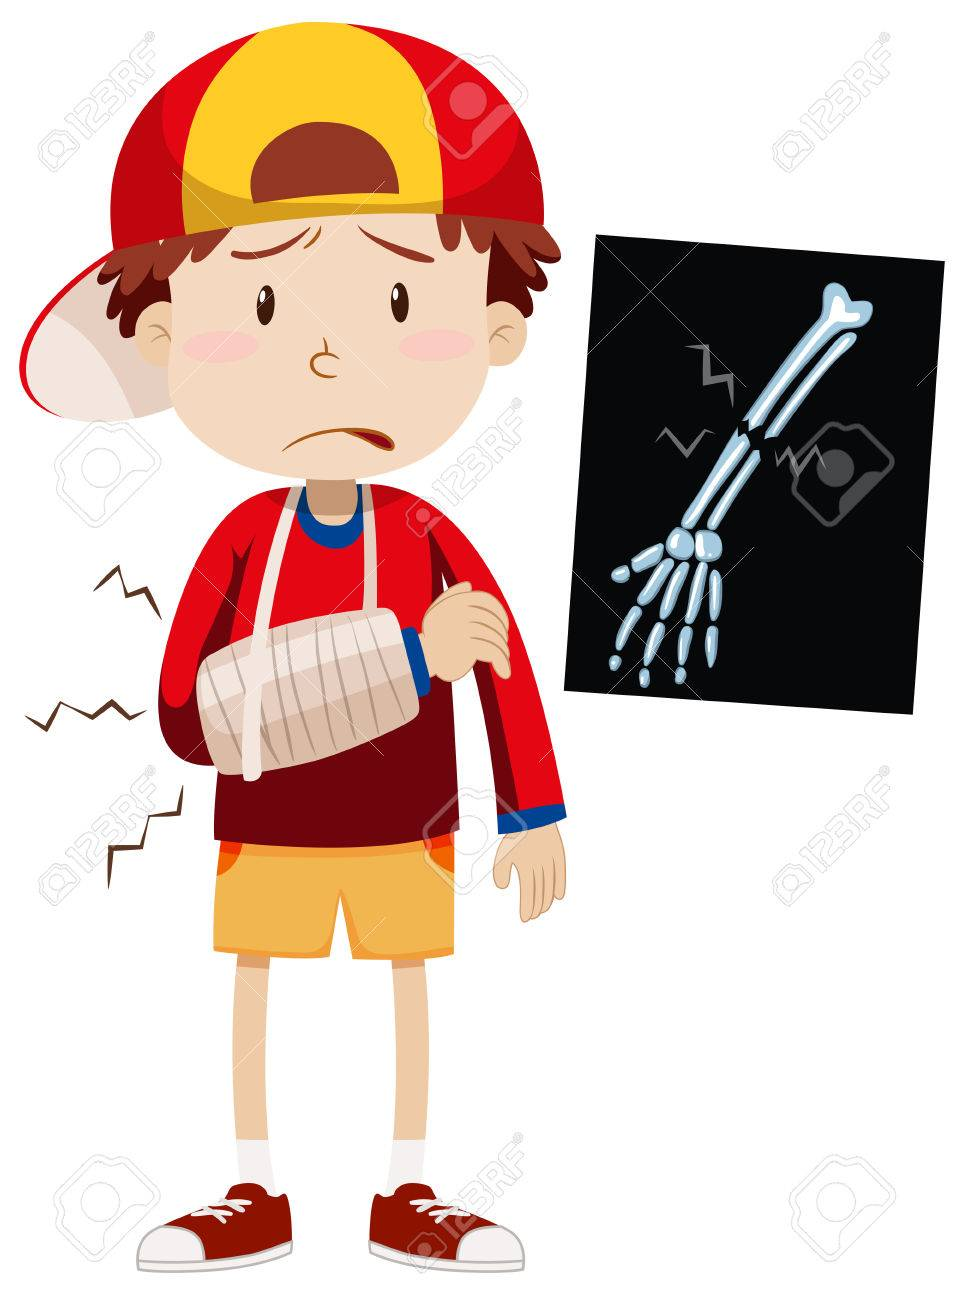 Broken Arm Clipart.